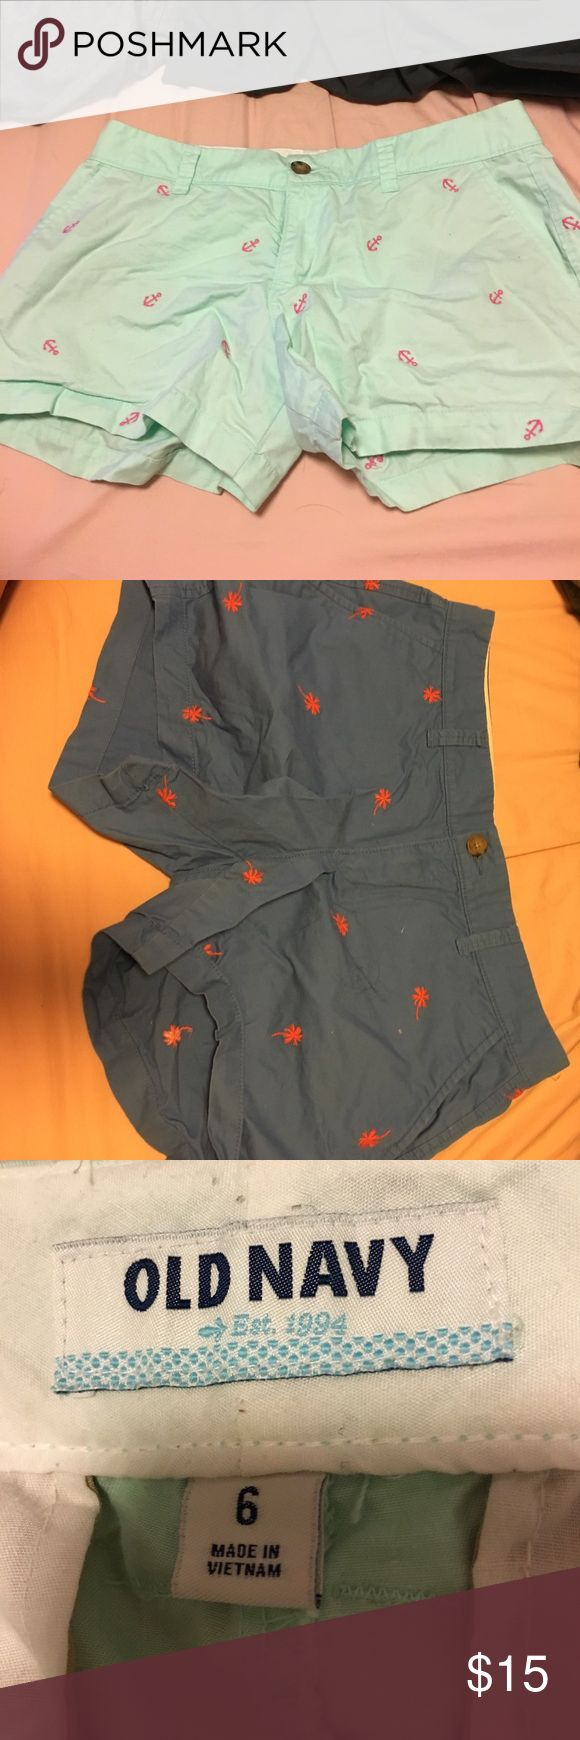 shorts old navy light green with pink anchors & blue with orange palm trees great for golfing or going out on the boat Old Navy Shorts Bermudas